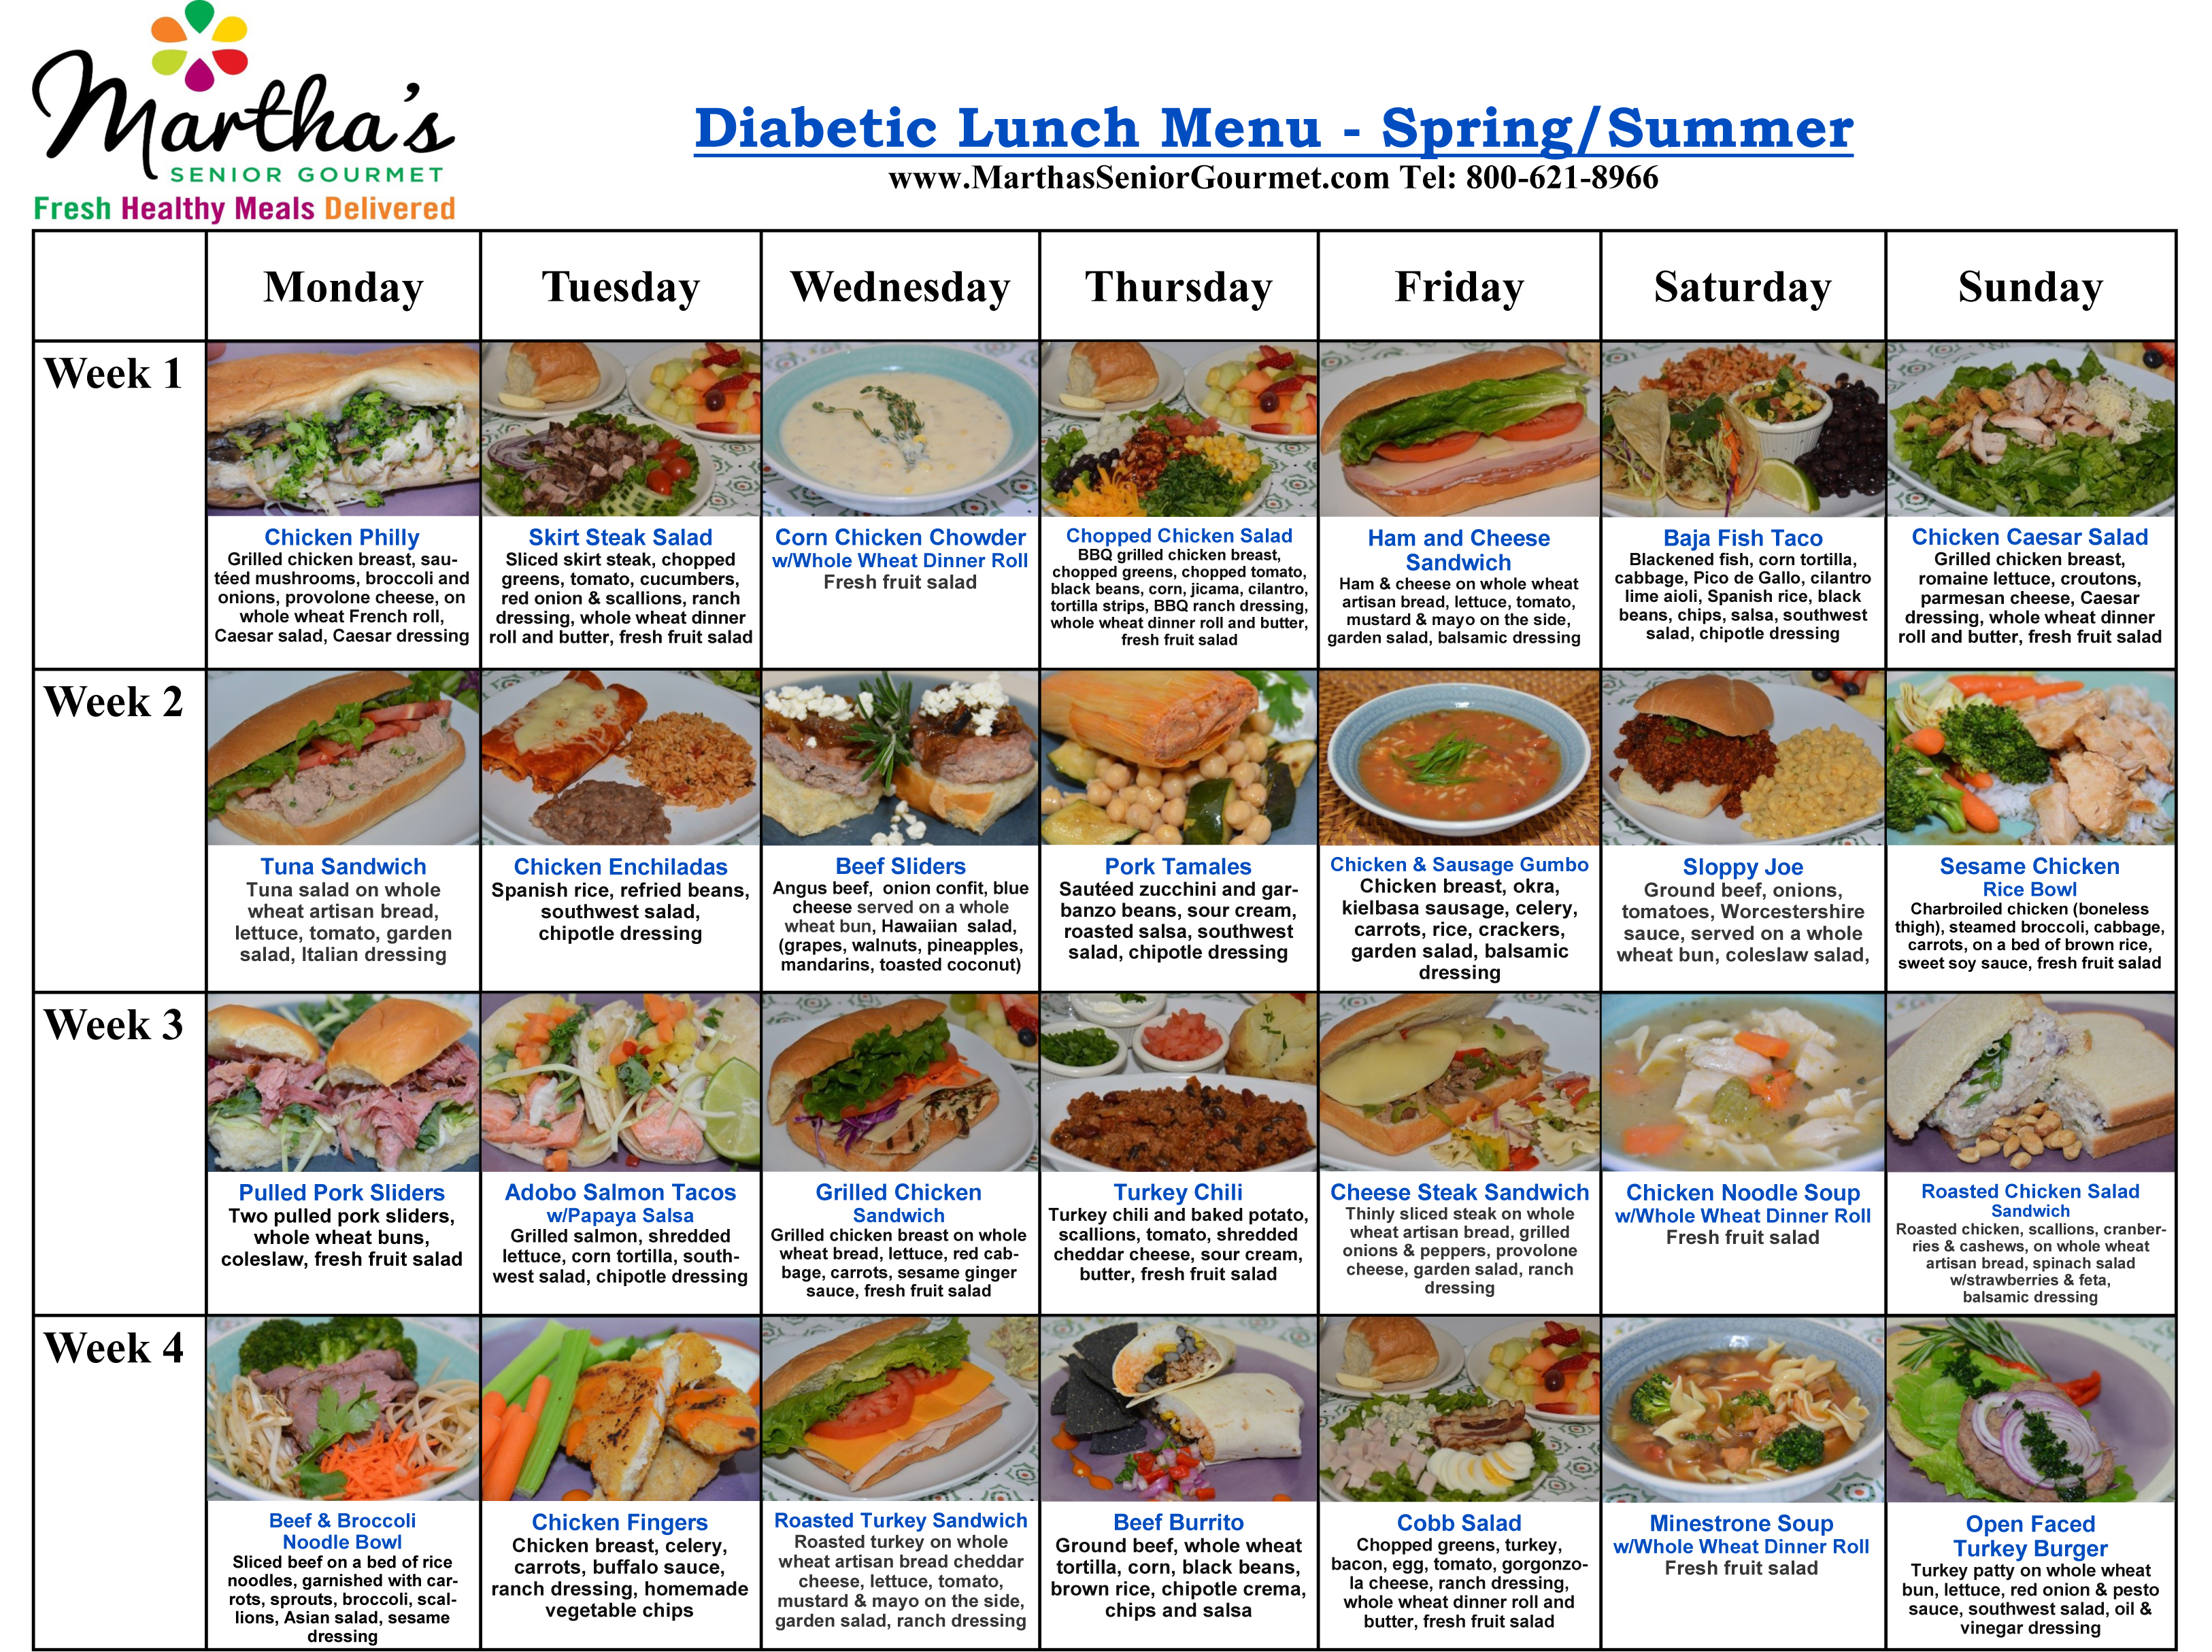 Martha's Diabetic Lunch Menu - Spring and Summer